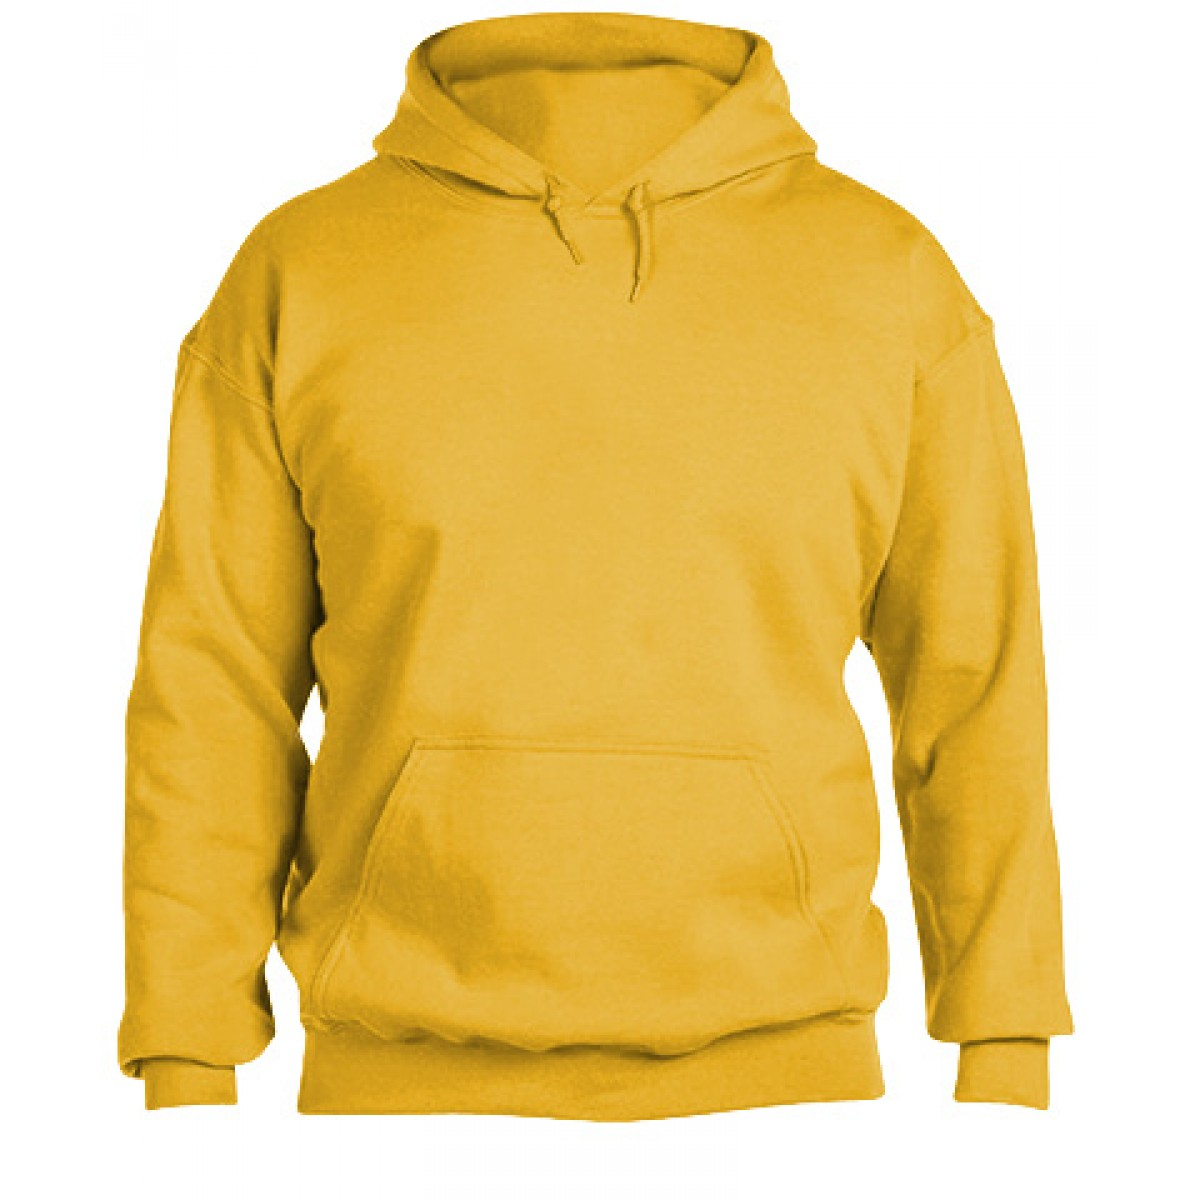 Hooded Sweatshirt 50/50 Heavy Blend -Gold-S